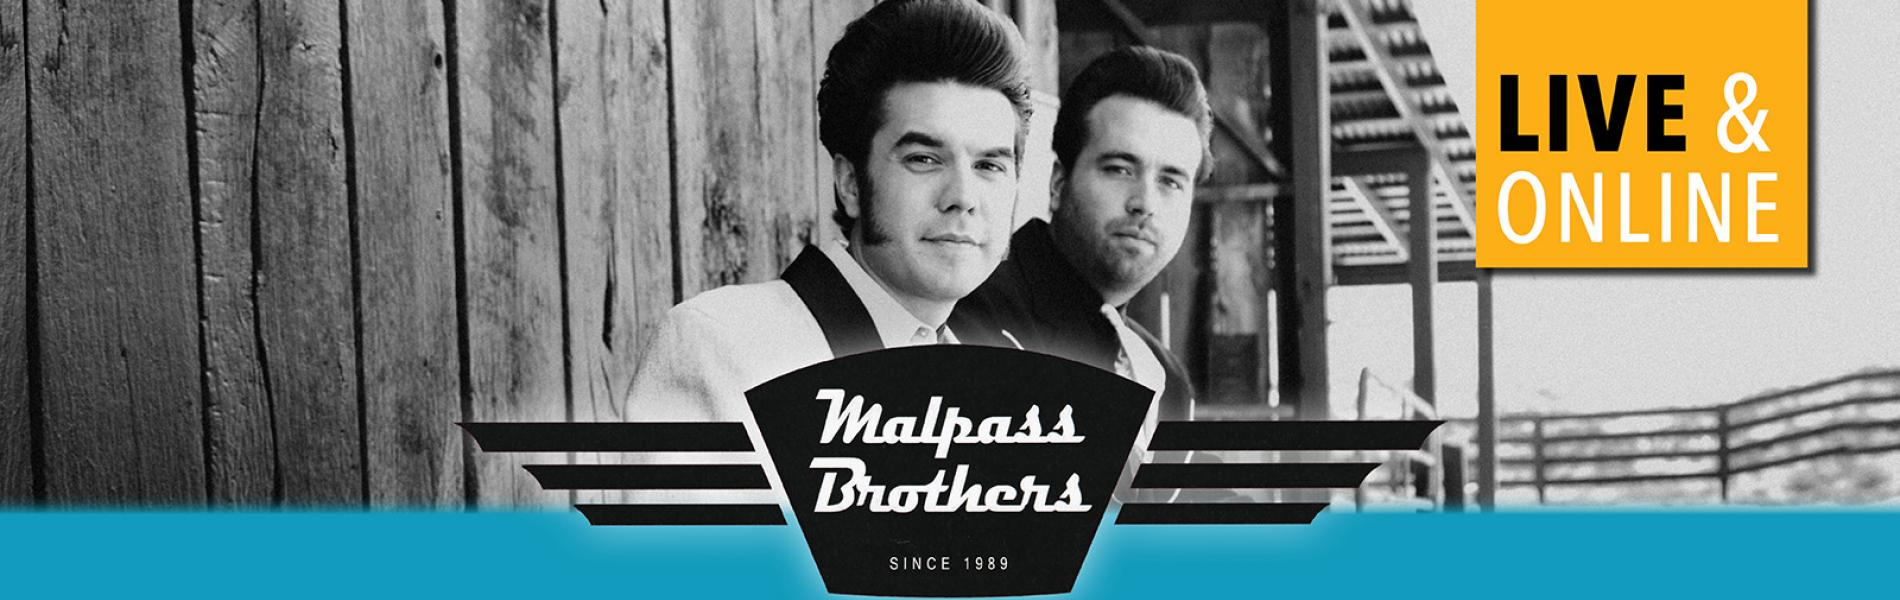 The Malpass Brothers